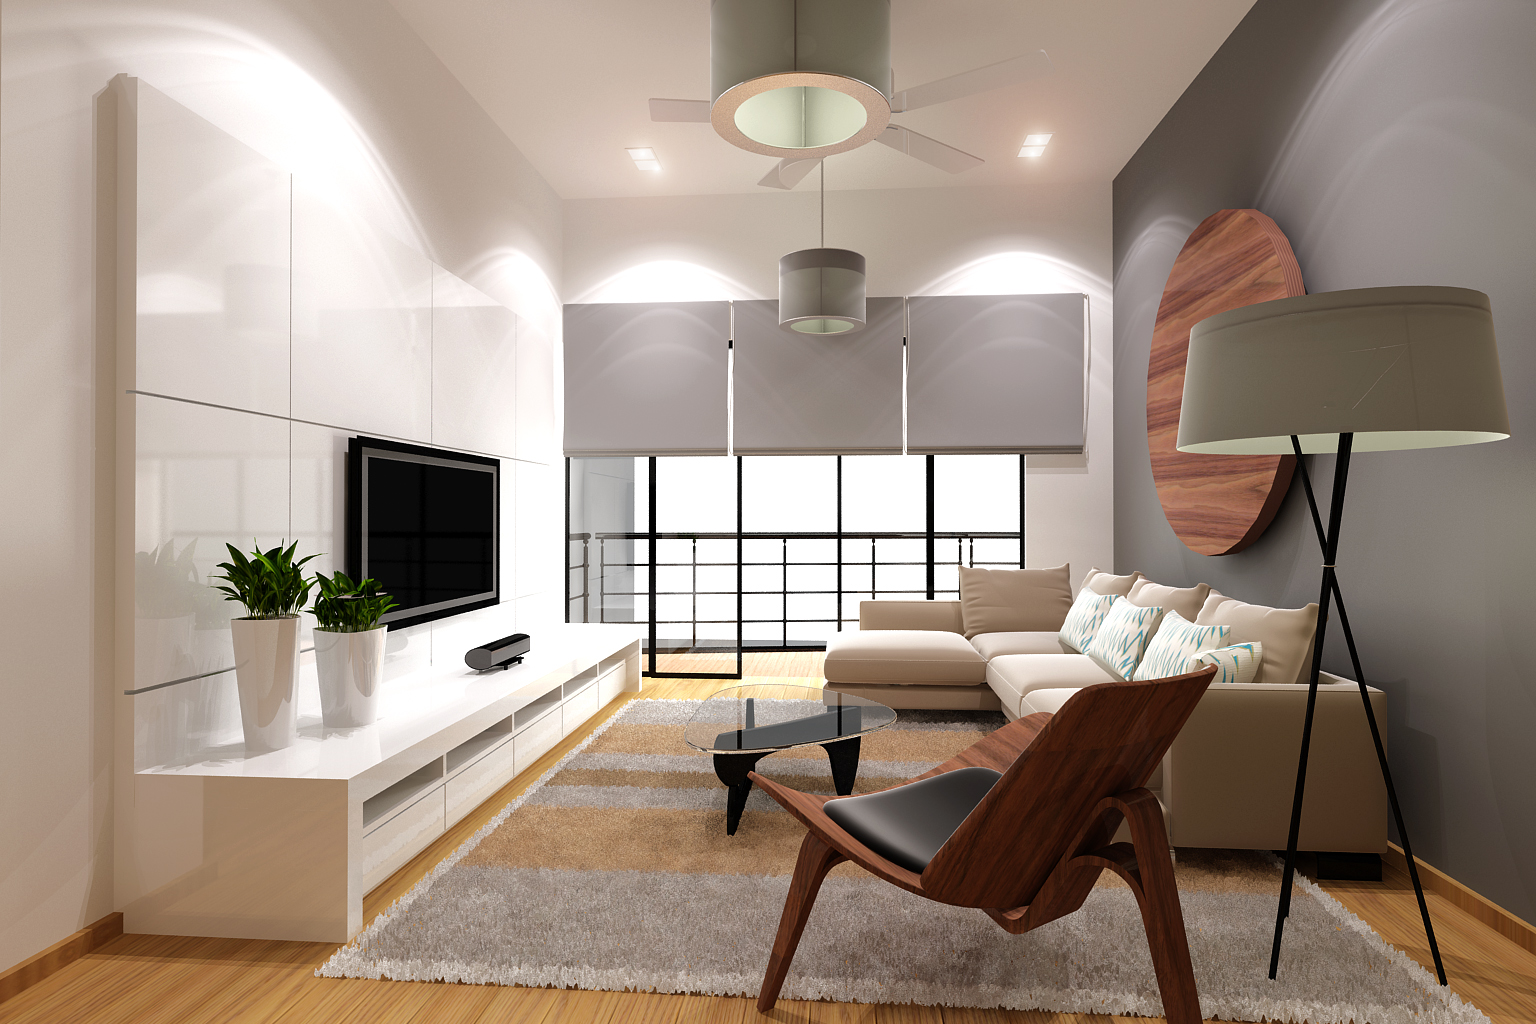 Zen Style Interior Design Living Room 1536 x 1024